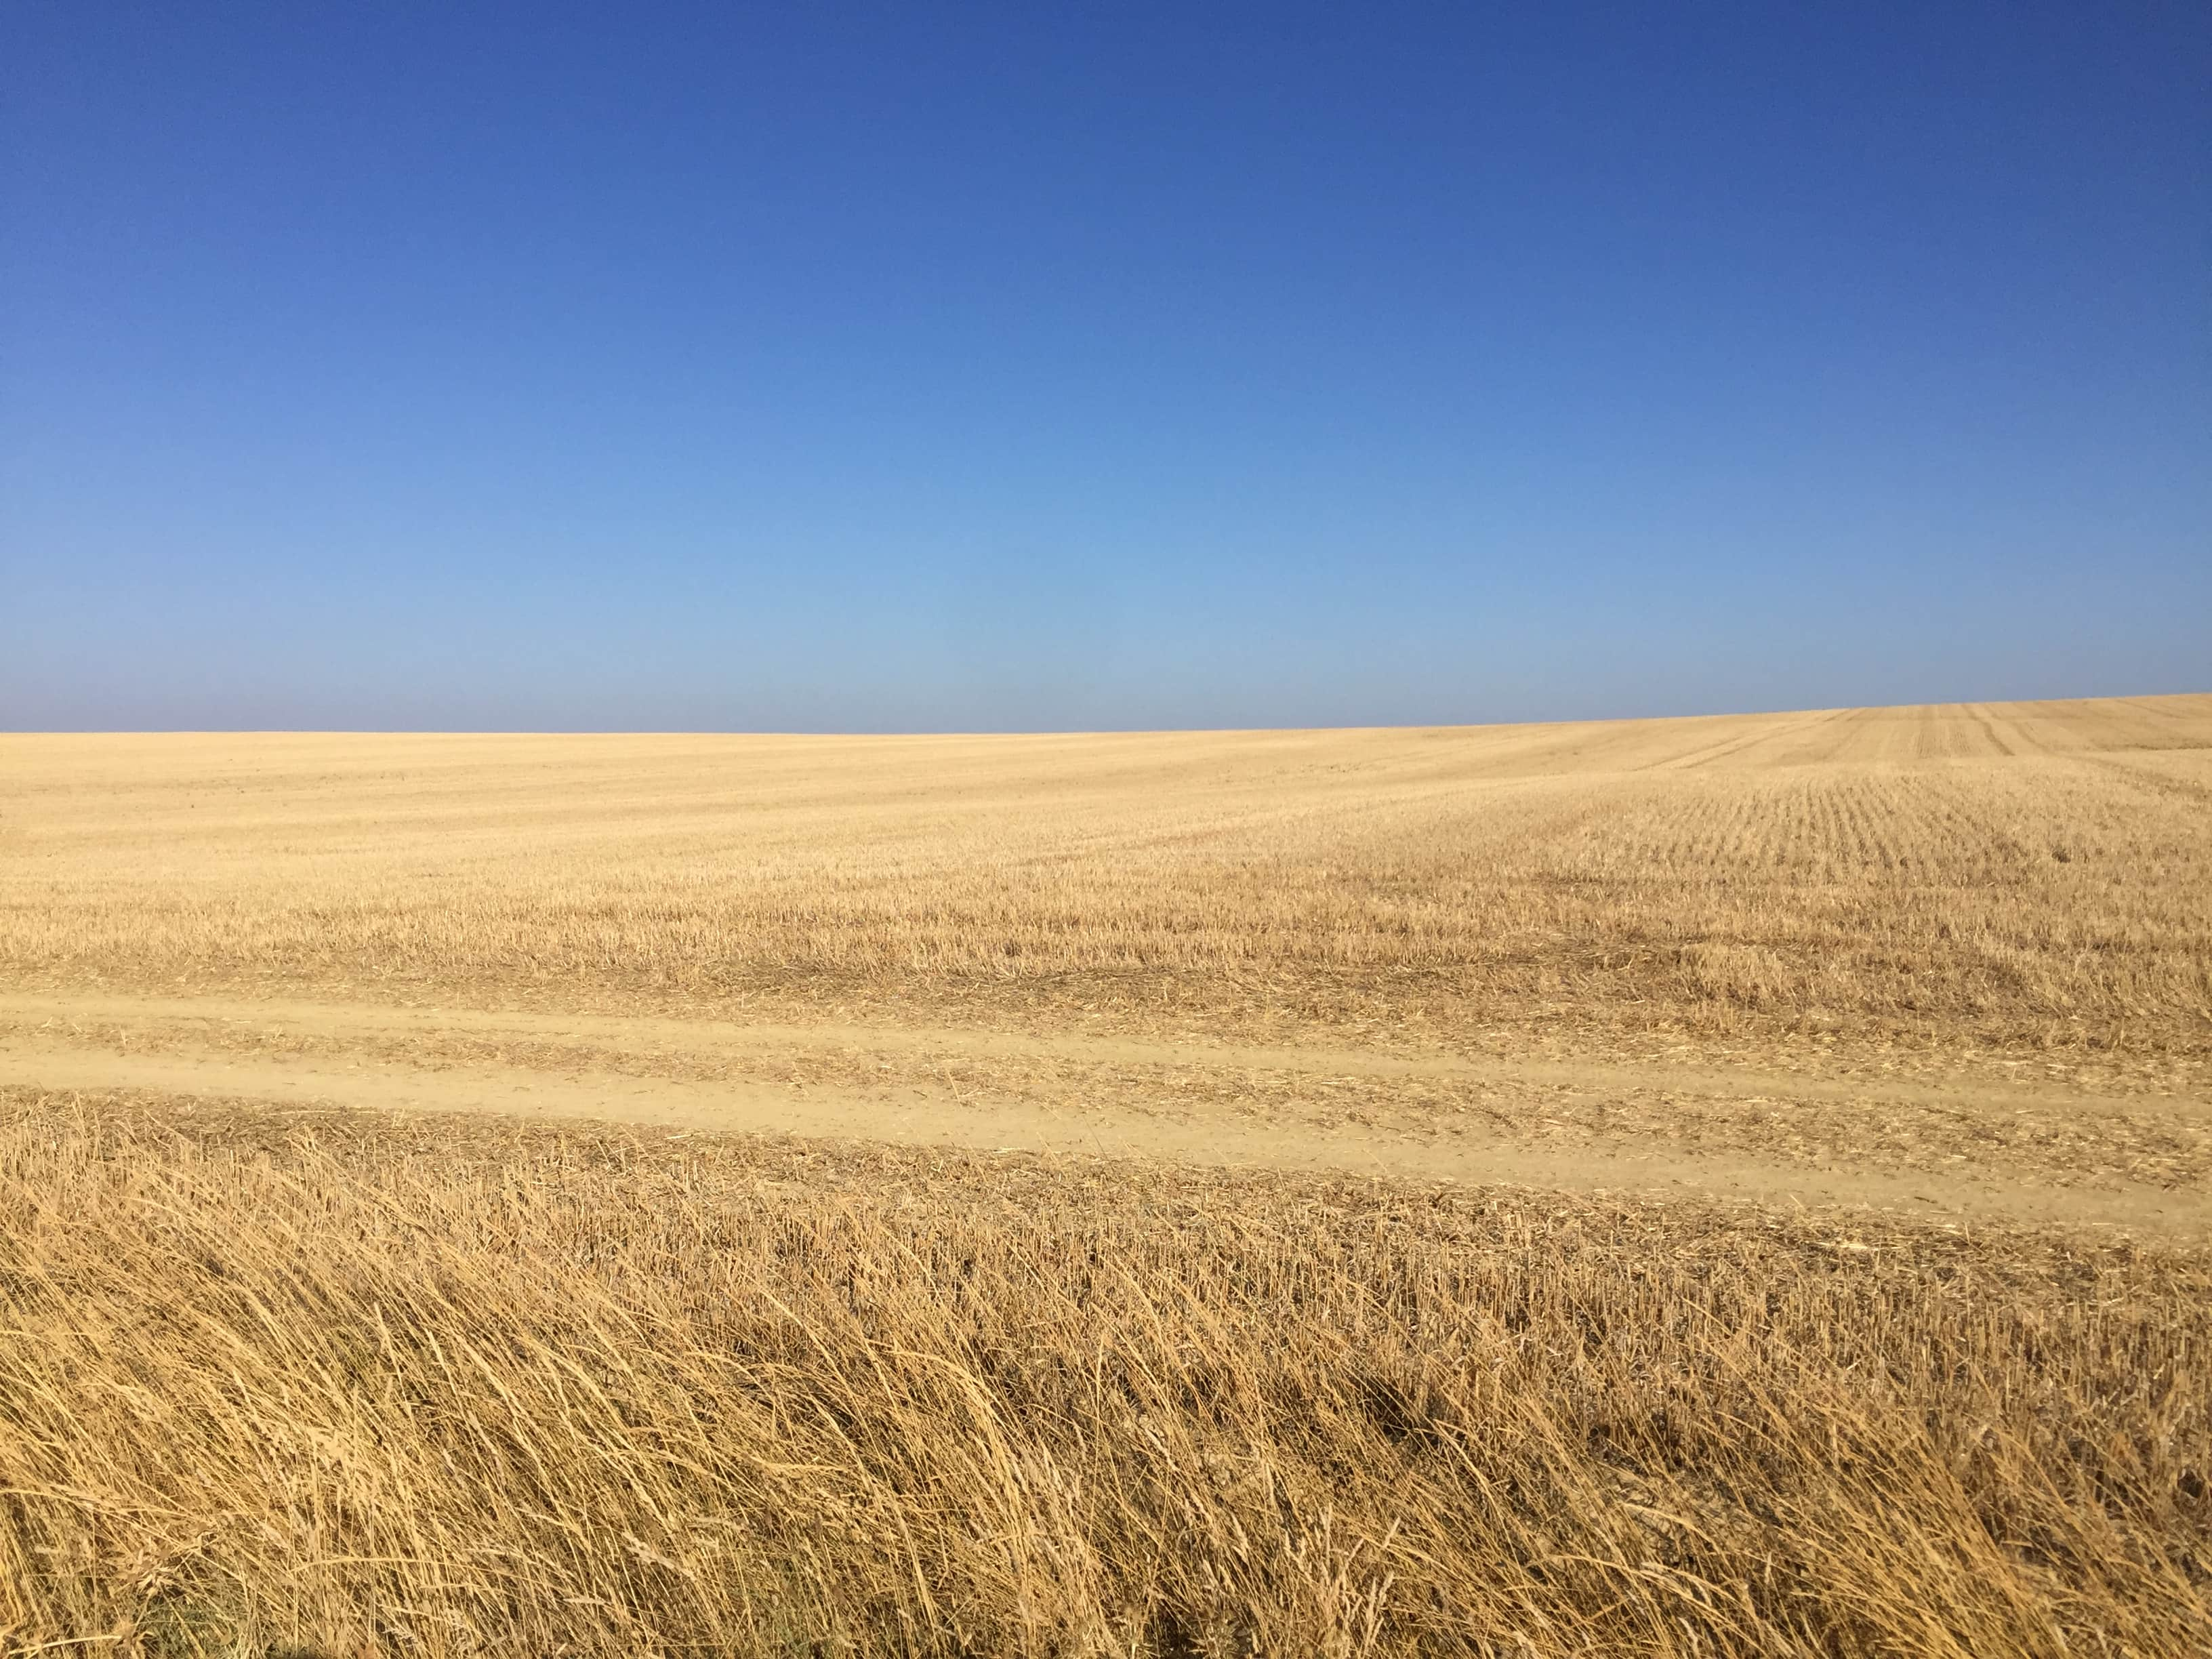 Where the sky meets the wheat